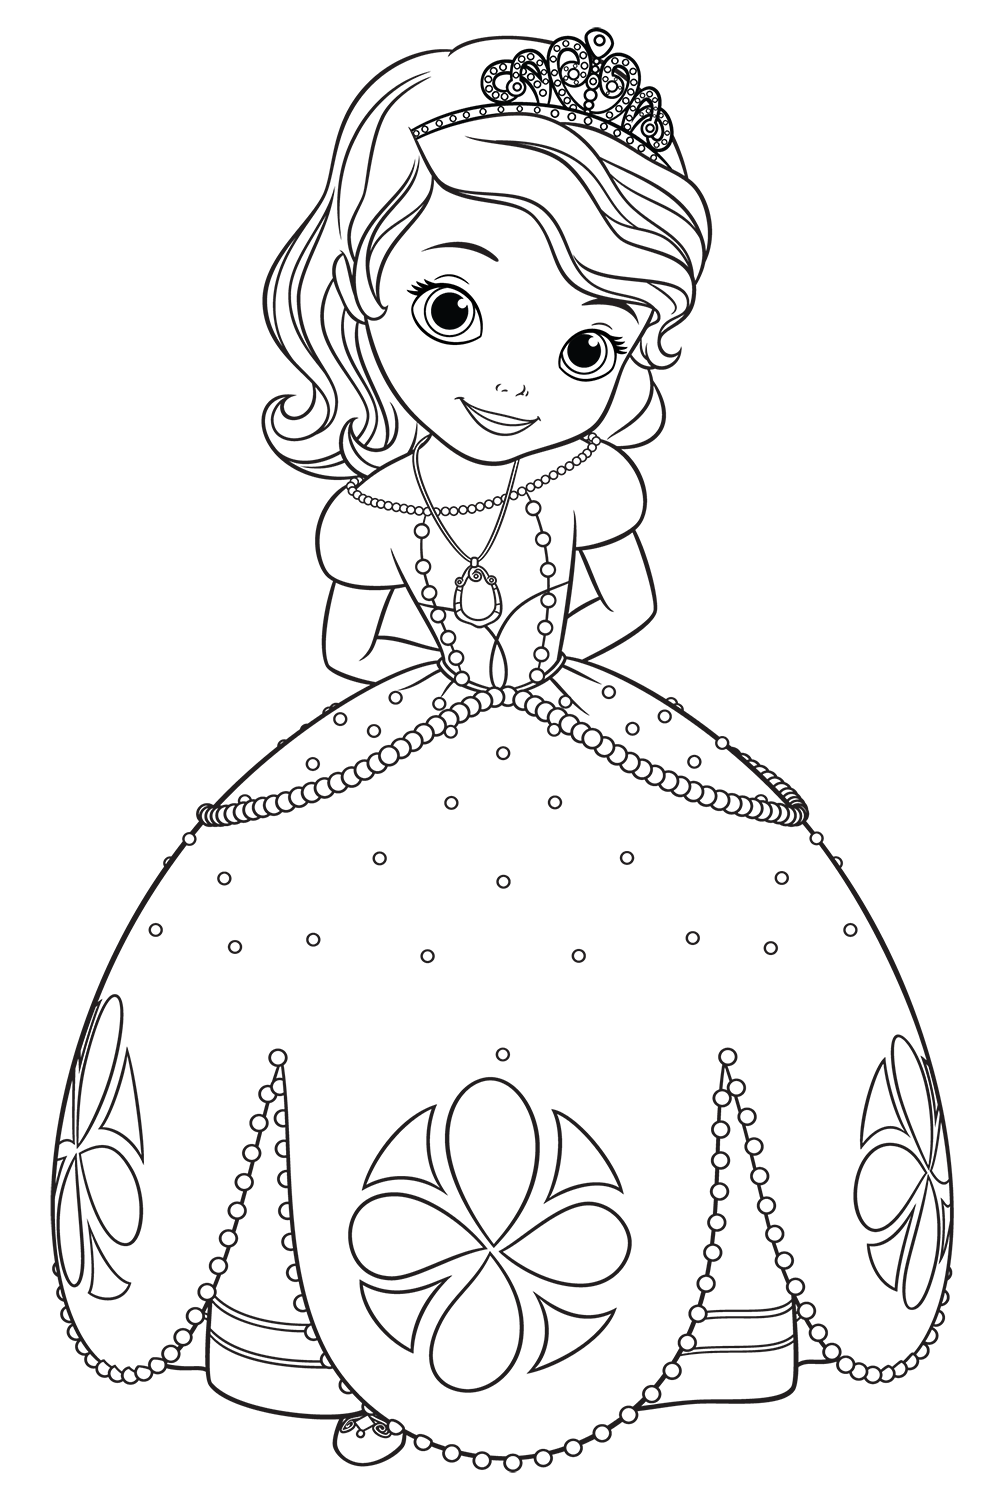 Pin by Laura Finch on Girlie Girl\'s Coloring Pages | Pinterest ...